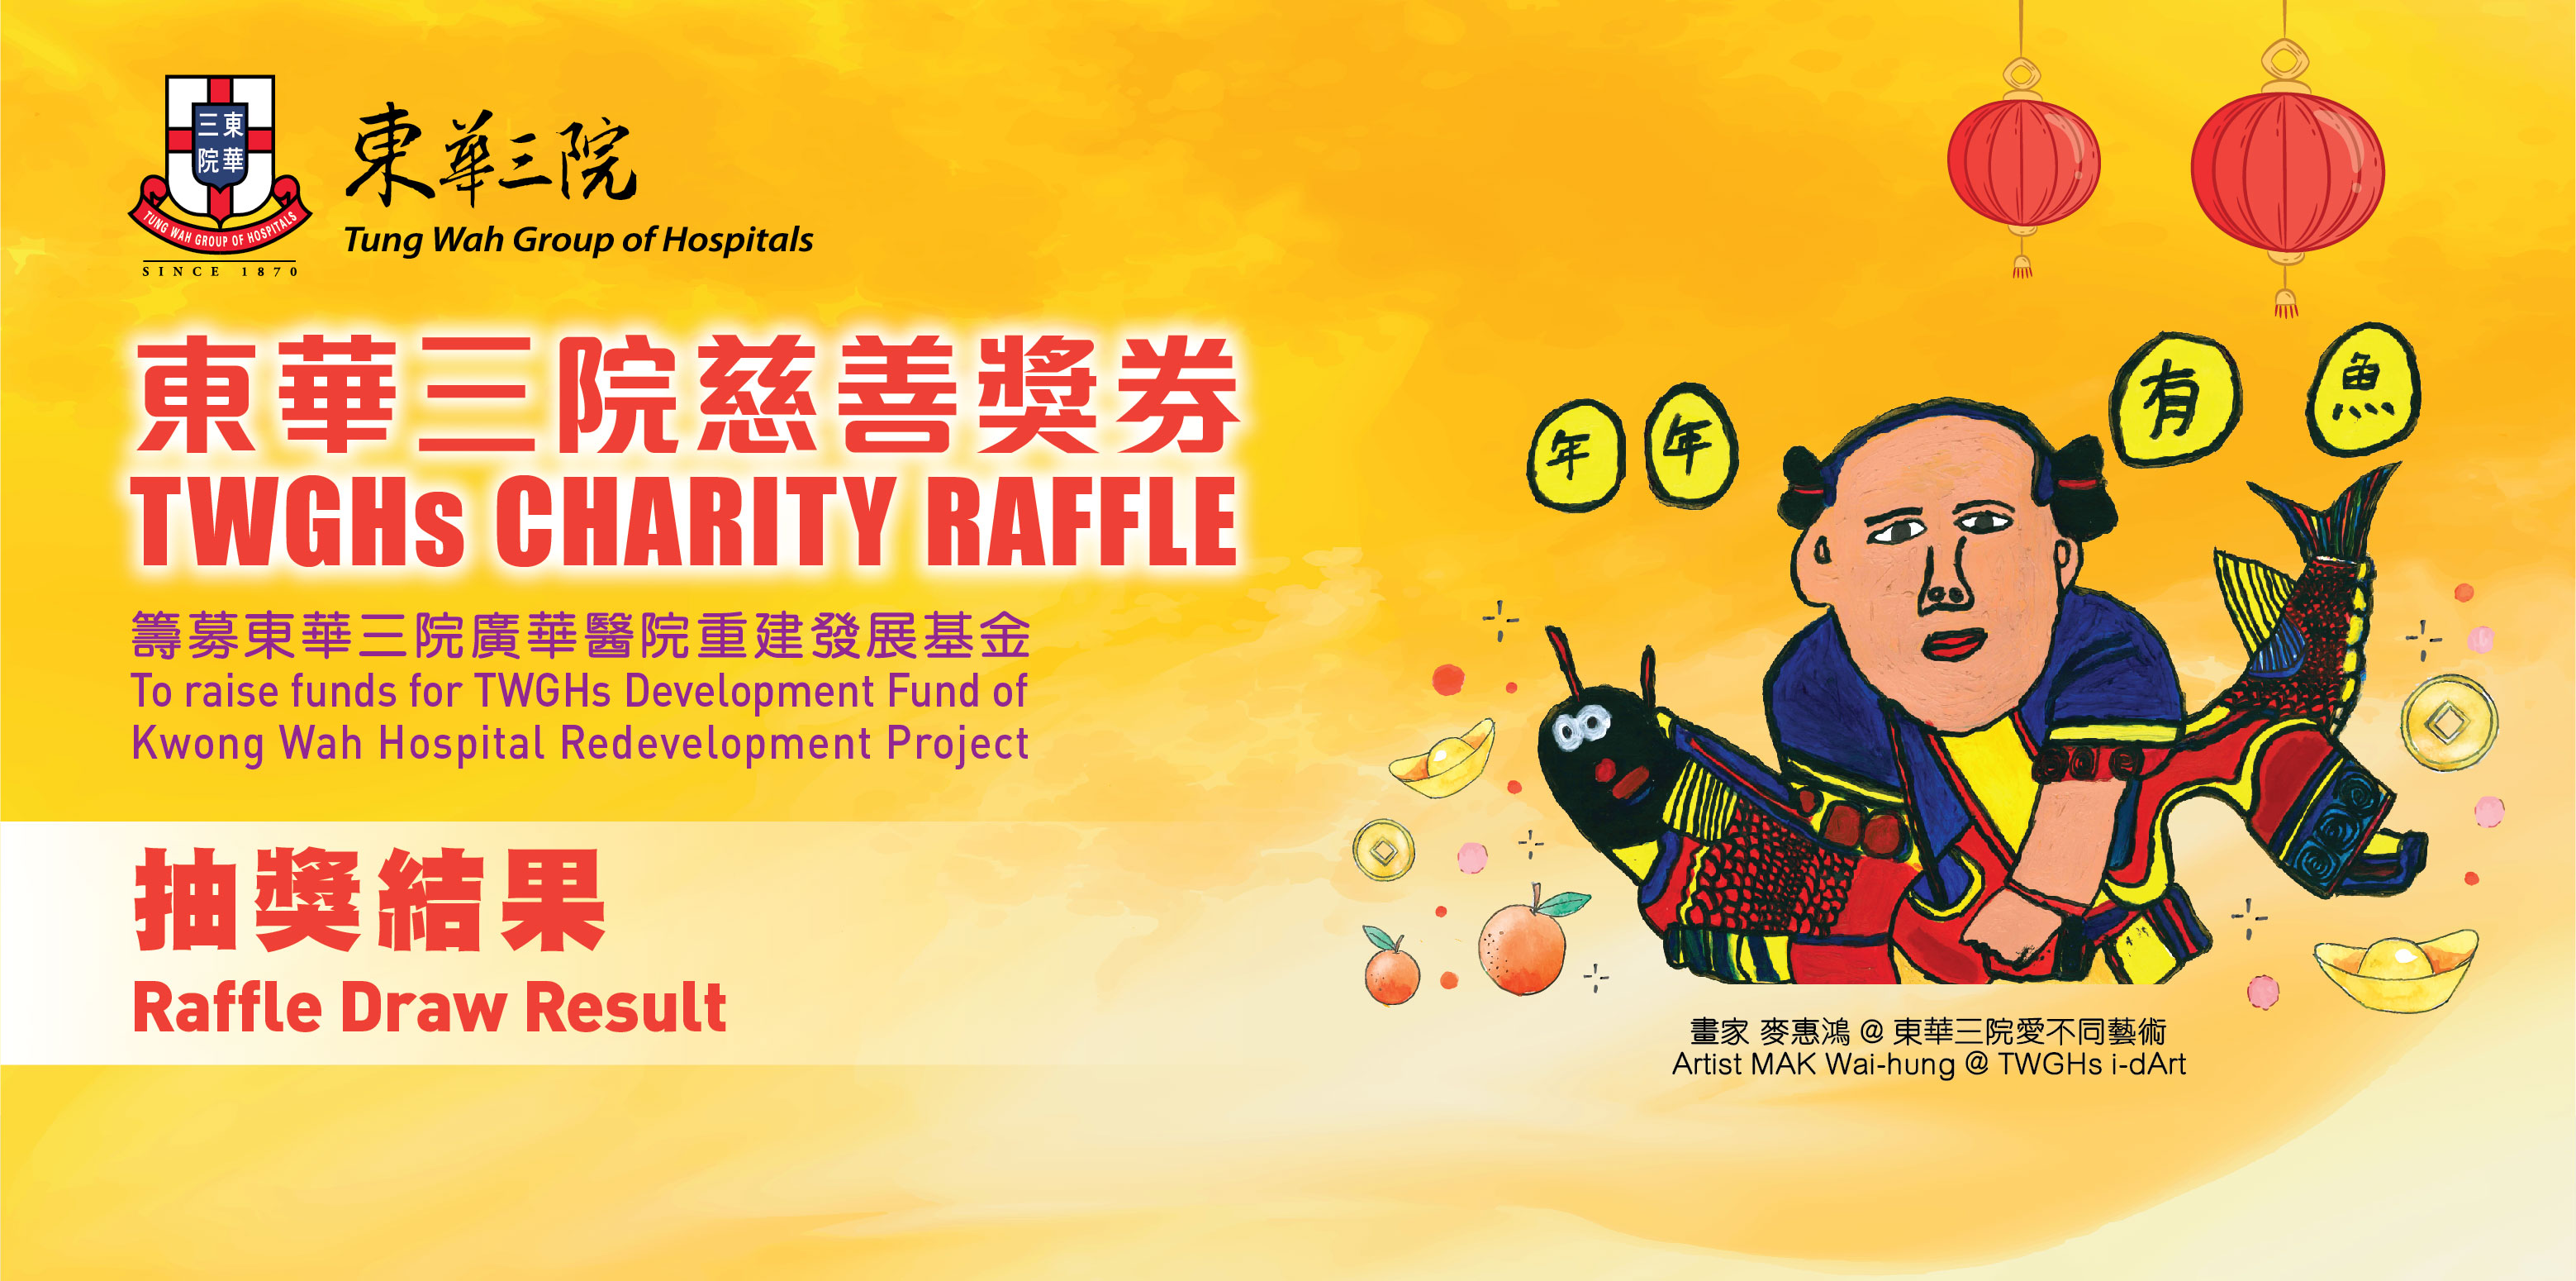 Raffle Draw of TWGHs Charity Raffle (8-3-2019) | Tung Wah Group of